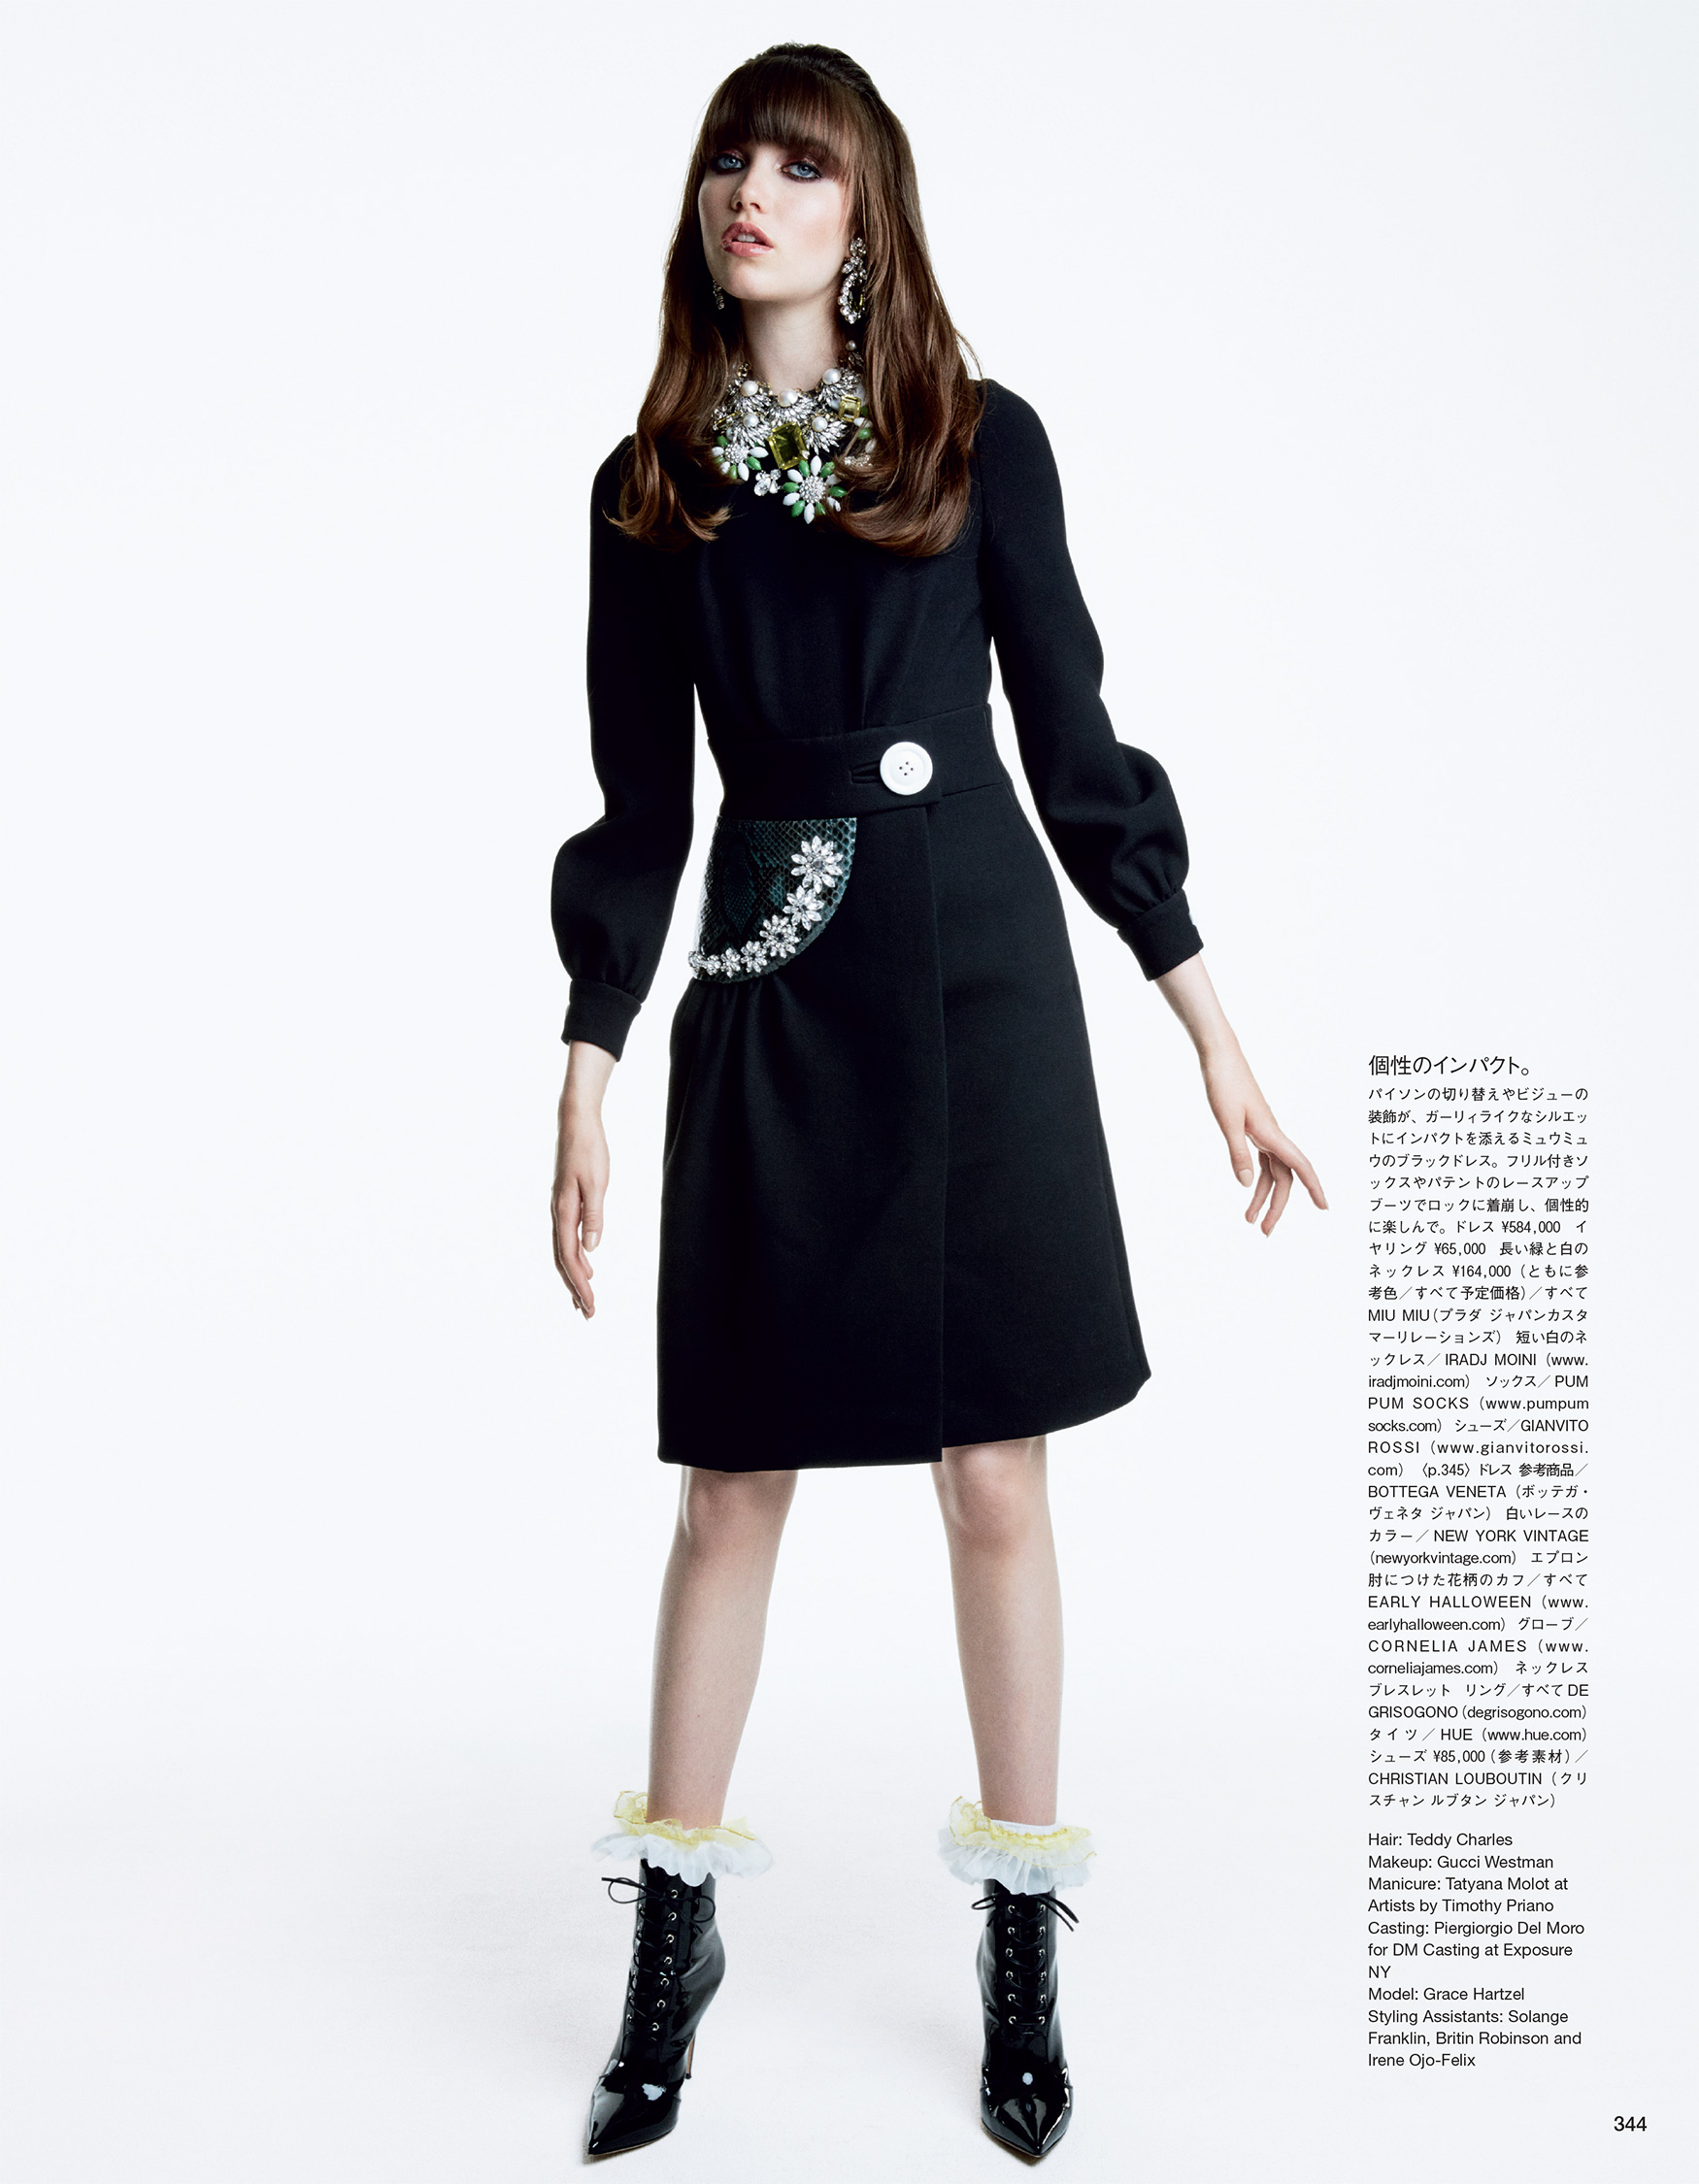 Giovanna-Battaglia-Vogue-Japan-October-2015-Patrick-Demarchelier-7.jpg